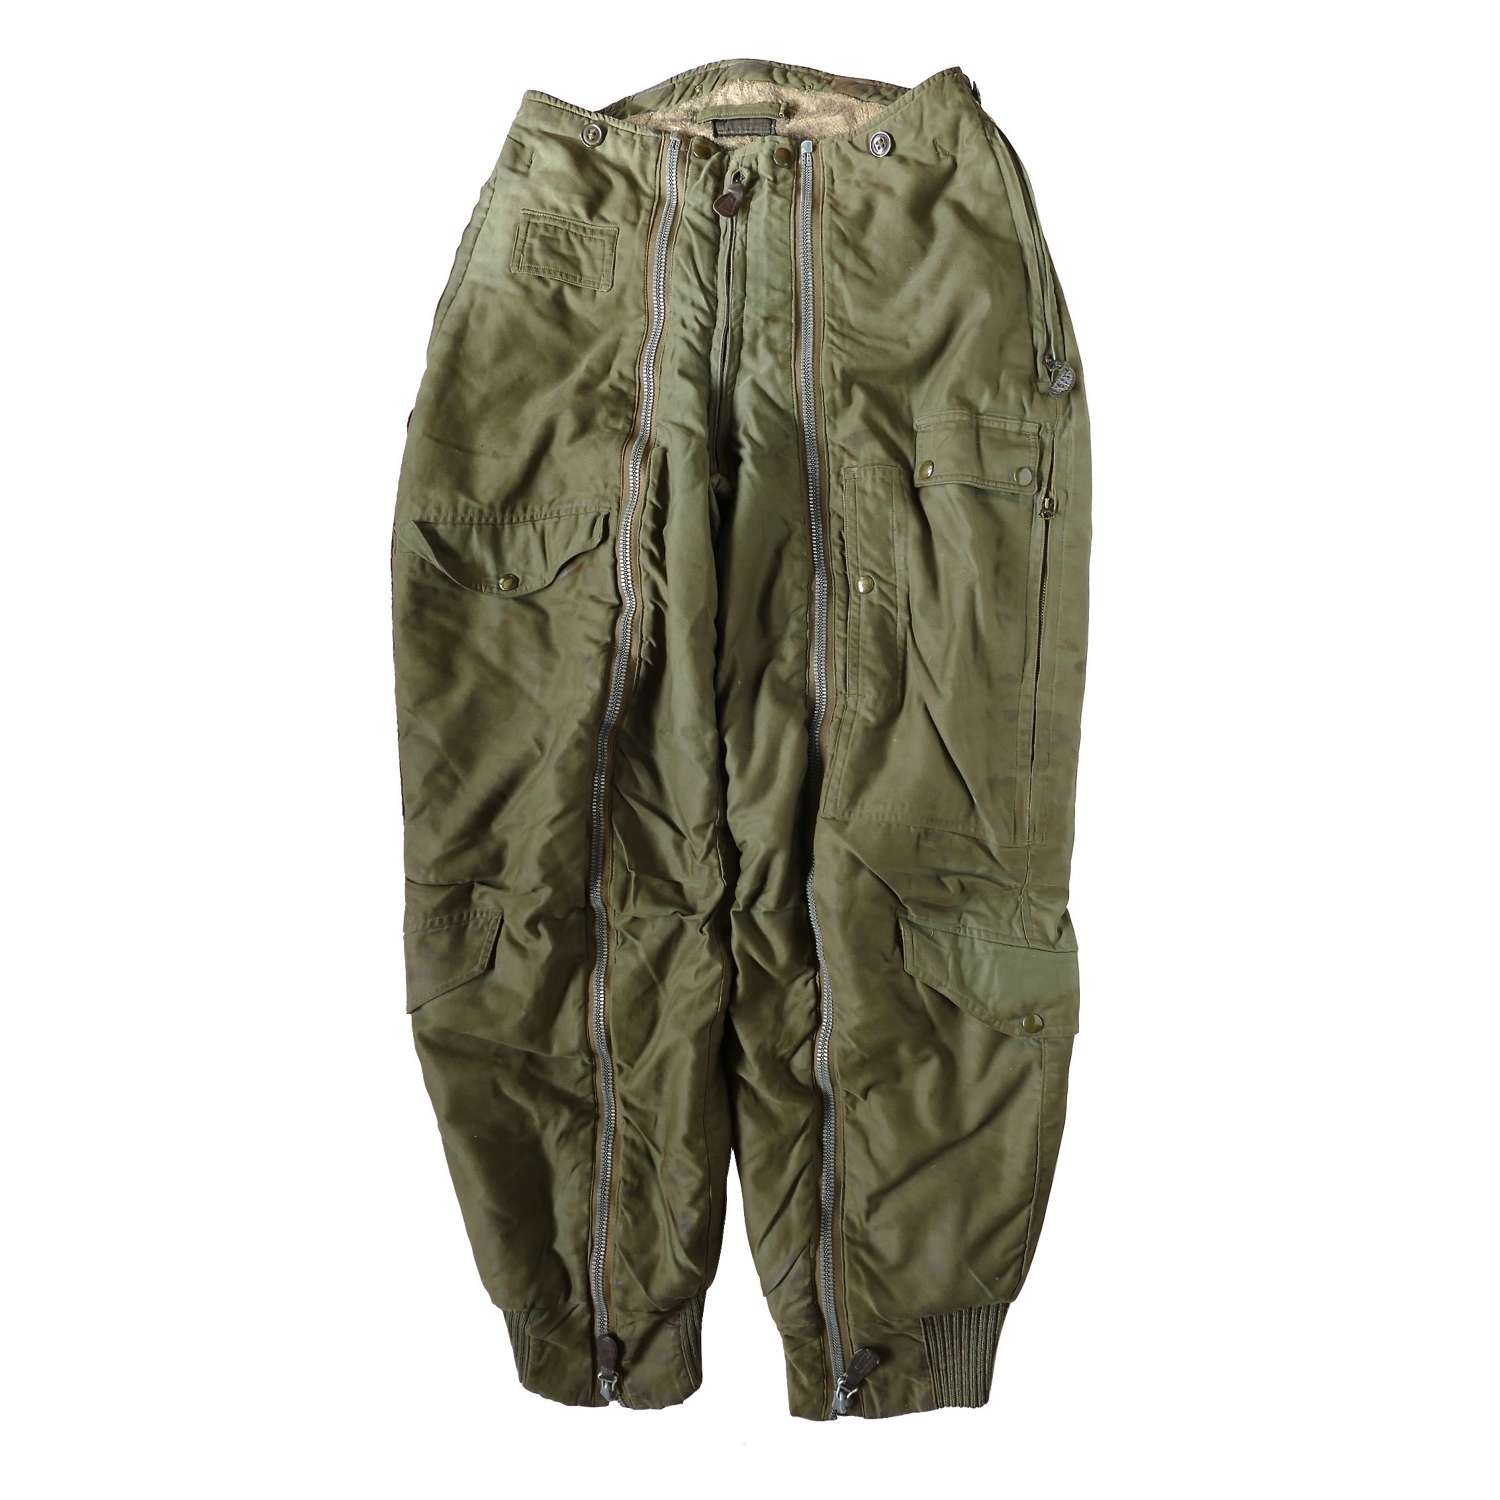 USAAF A-11 flying trousers